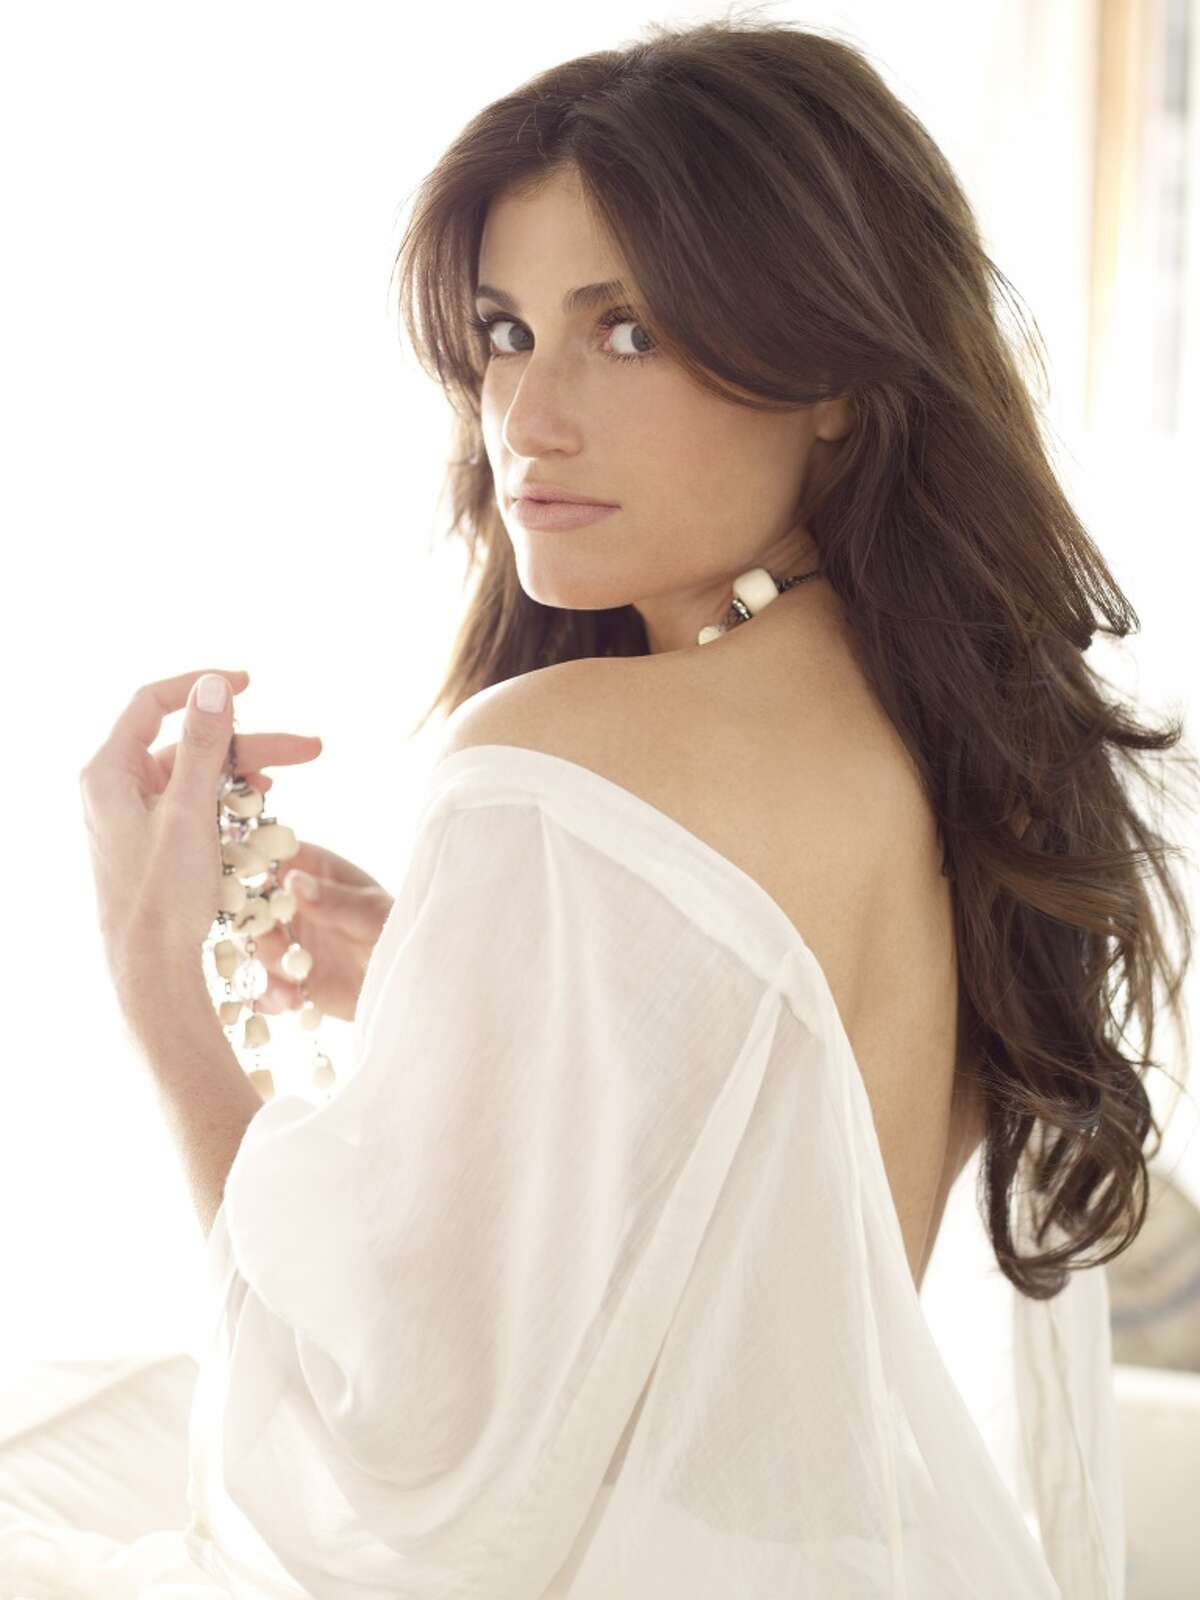 Idina Menzel is the voice of Elsa, the Snow Queen, in